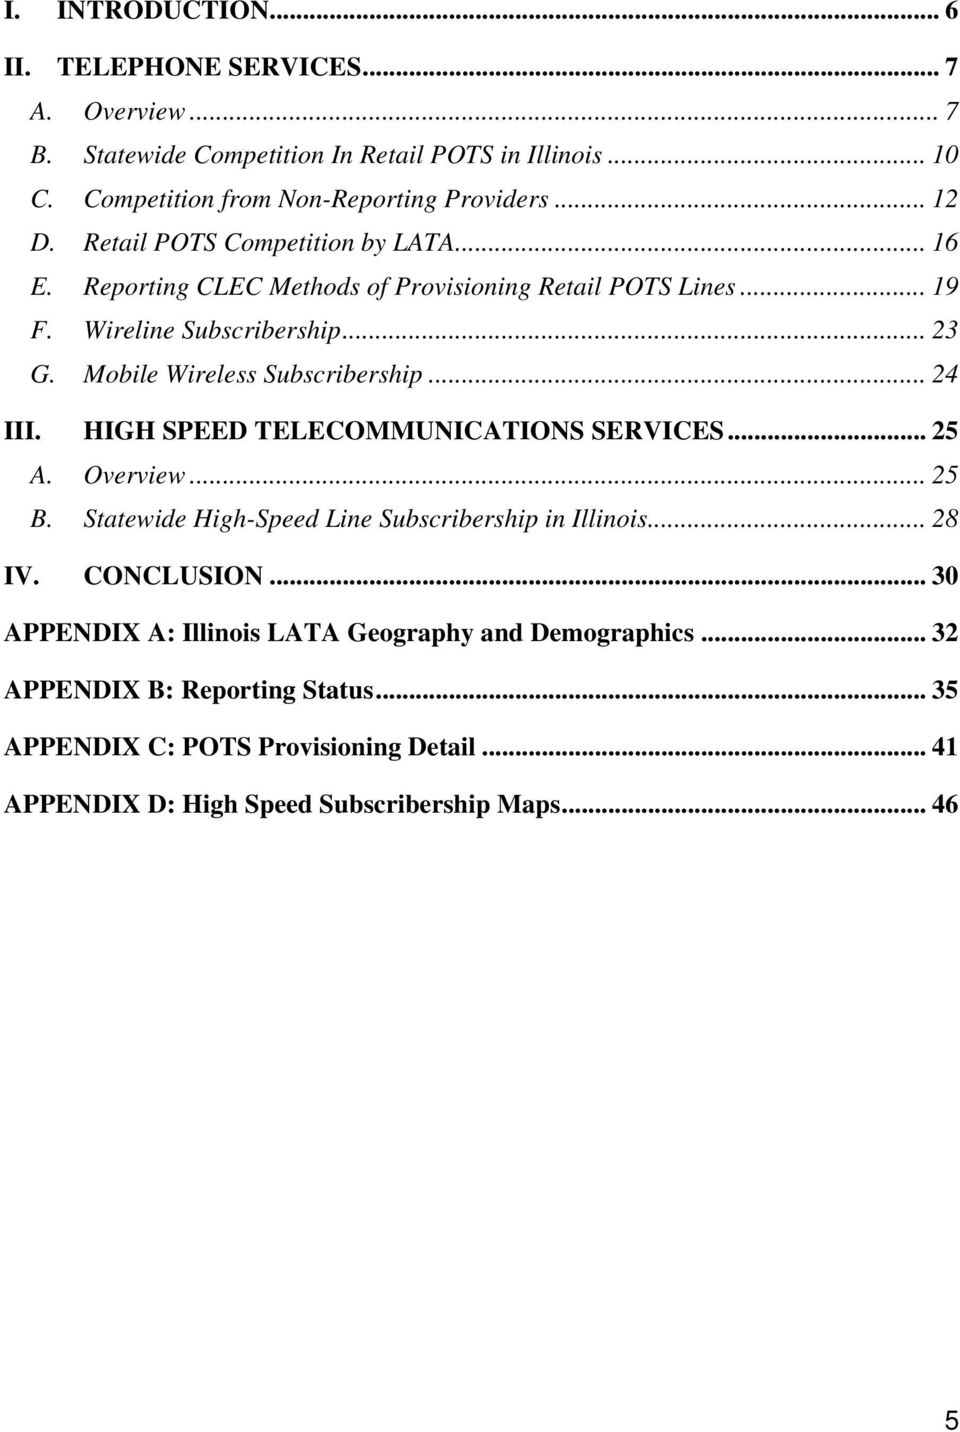 Mobile Wireless Subscribership... 24 III. HIGH SPEED TELECOMMUNICATIONS SERVICES... 25 A. Overview... 25 B. Statewide High-Speed Line Subscribership in Illinois... 28 IV.